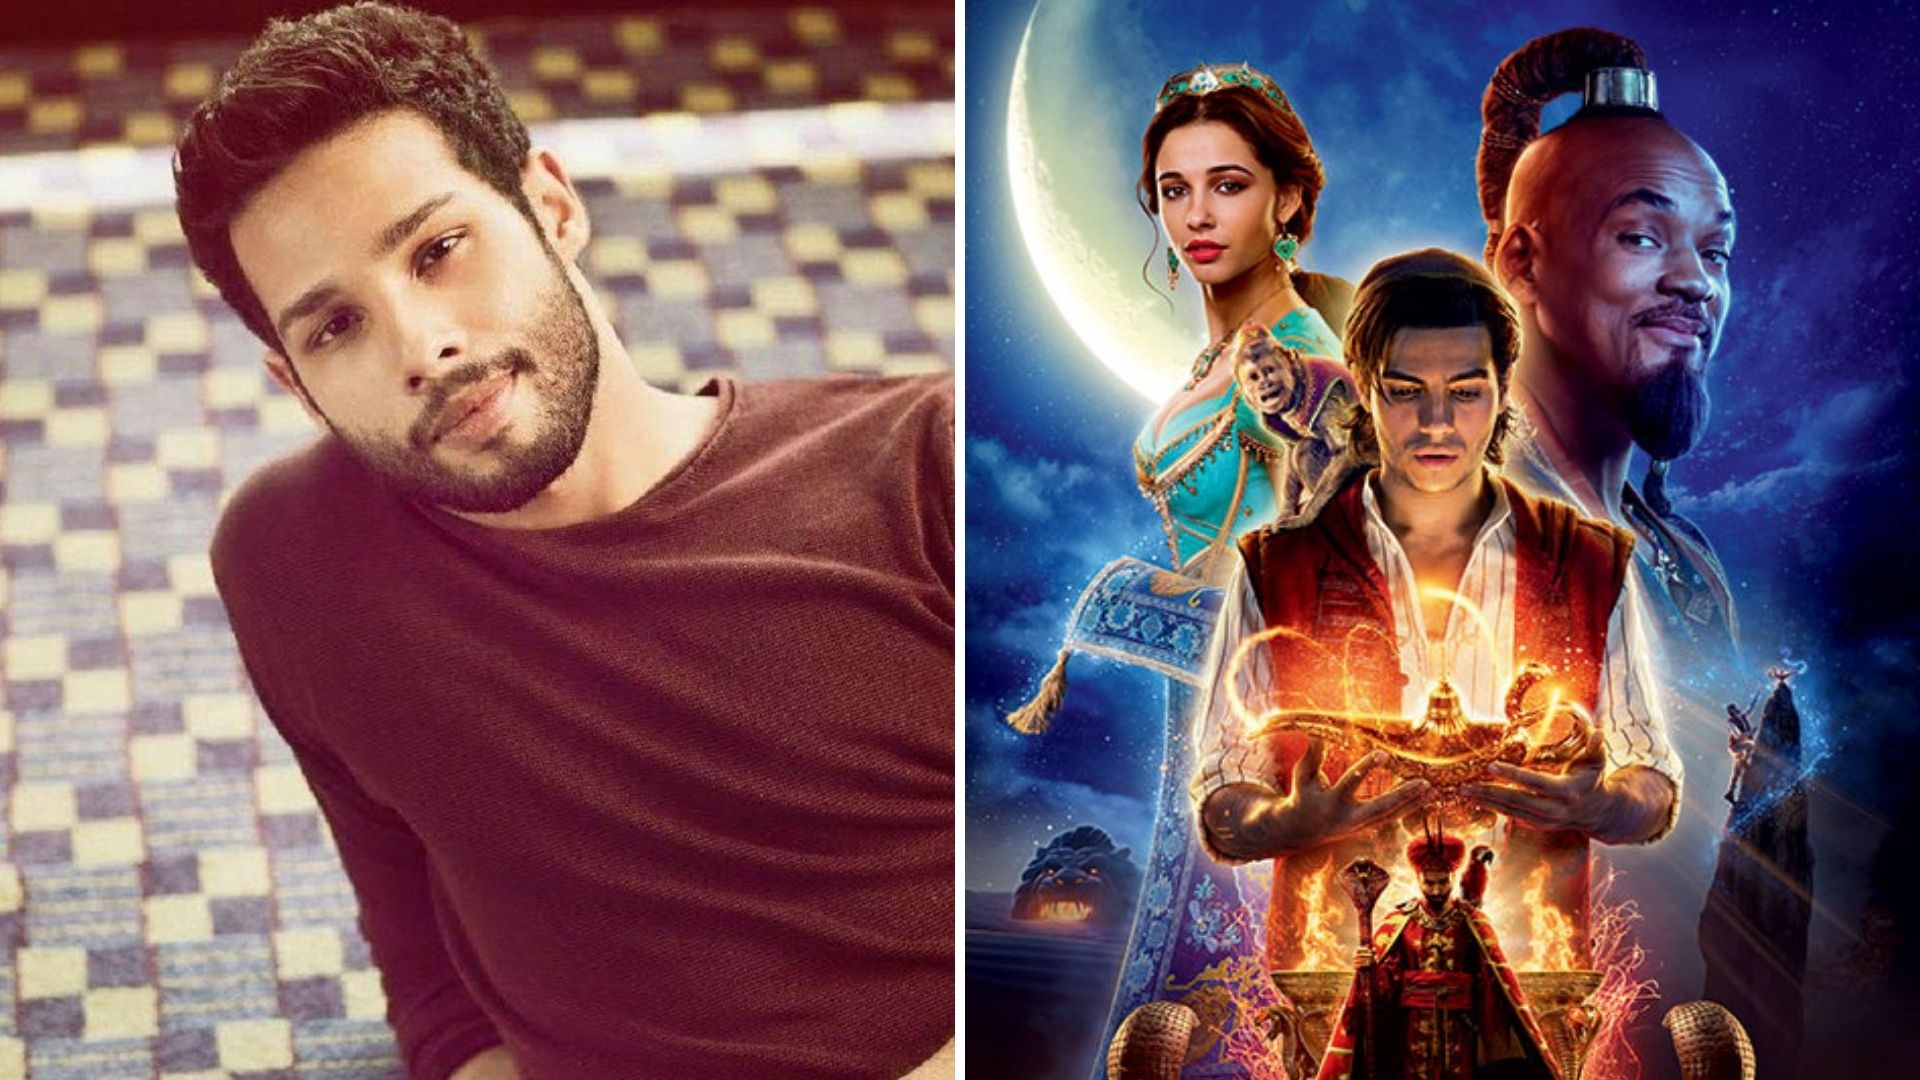 Did You Know? Siddhant Chaturvedi Auditioned for 'Aladdin'